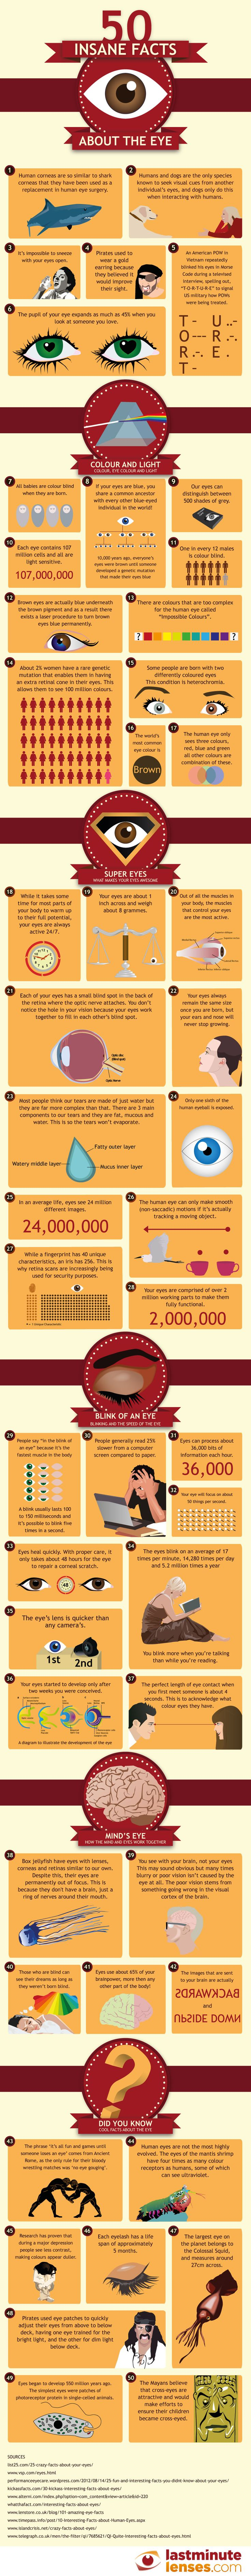 Insane Facts About The Eye  #Infographic #Eye #Facts L'Optique Optometry www.loptiqueoptometry.com